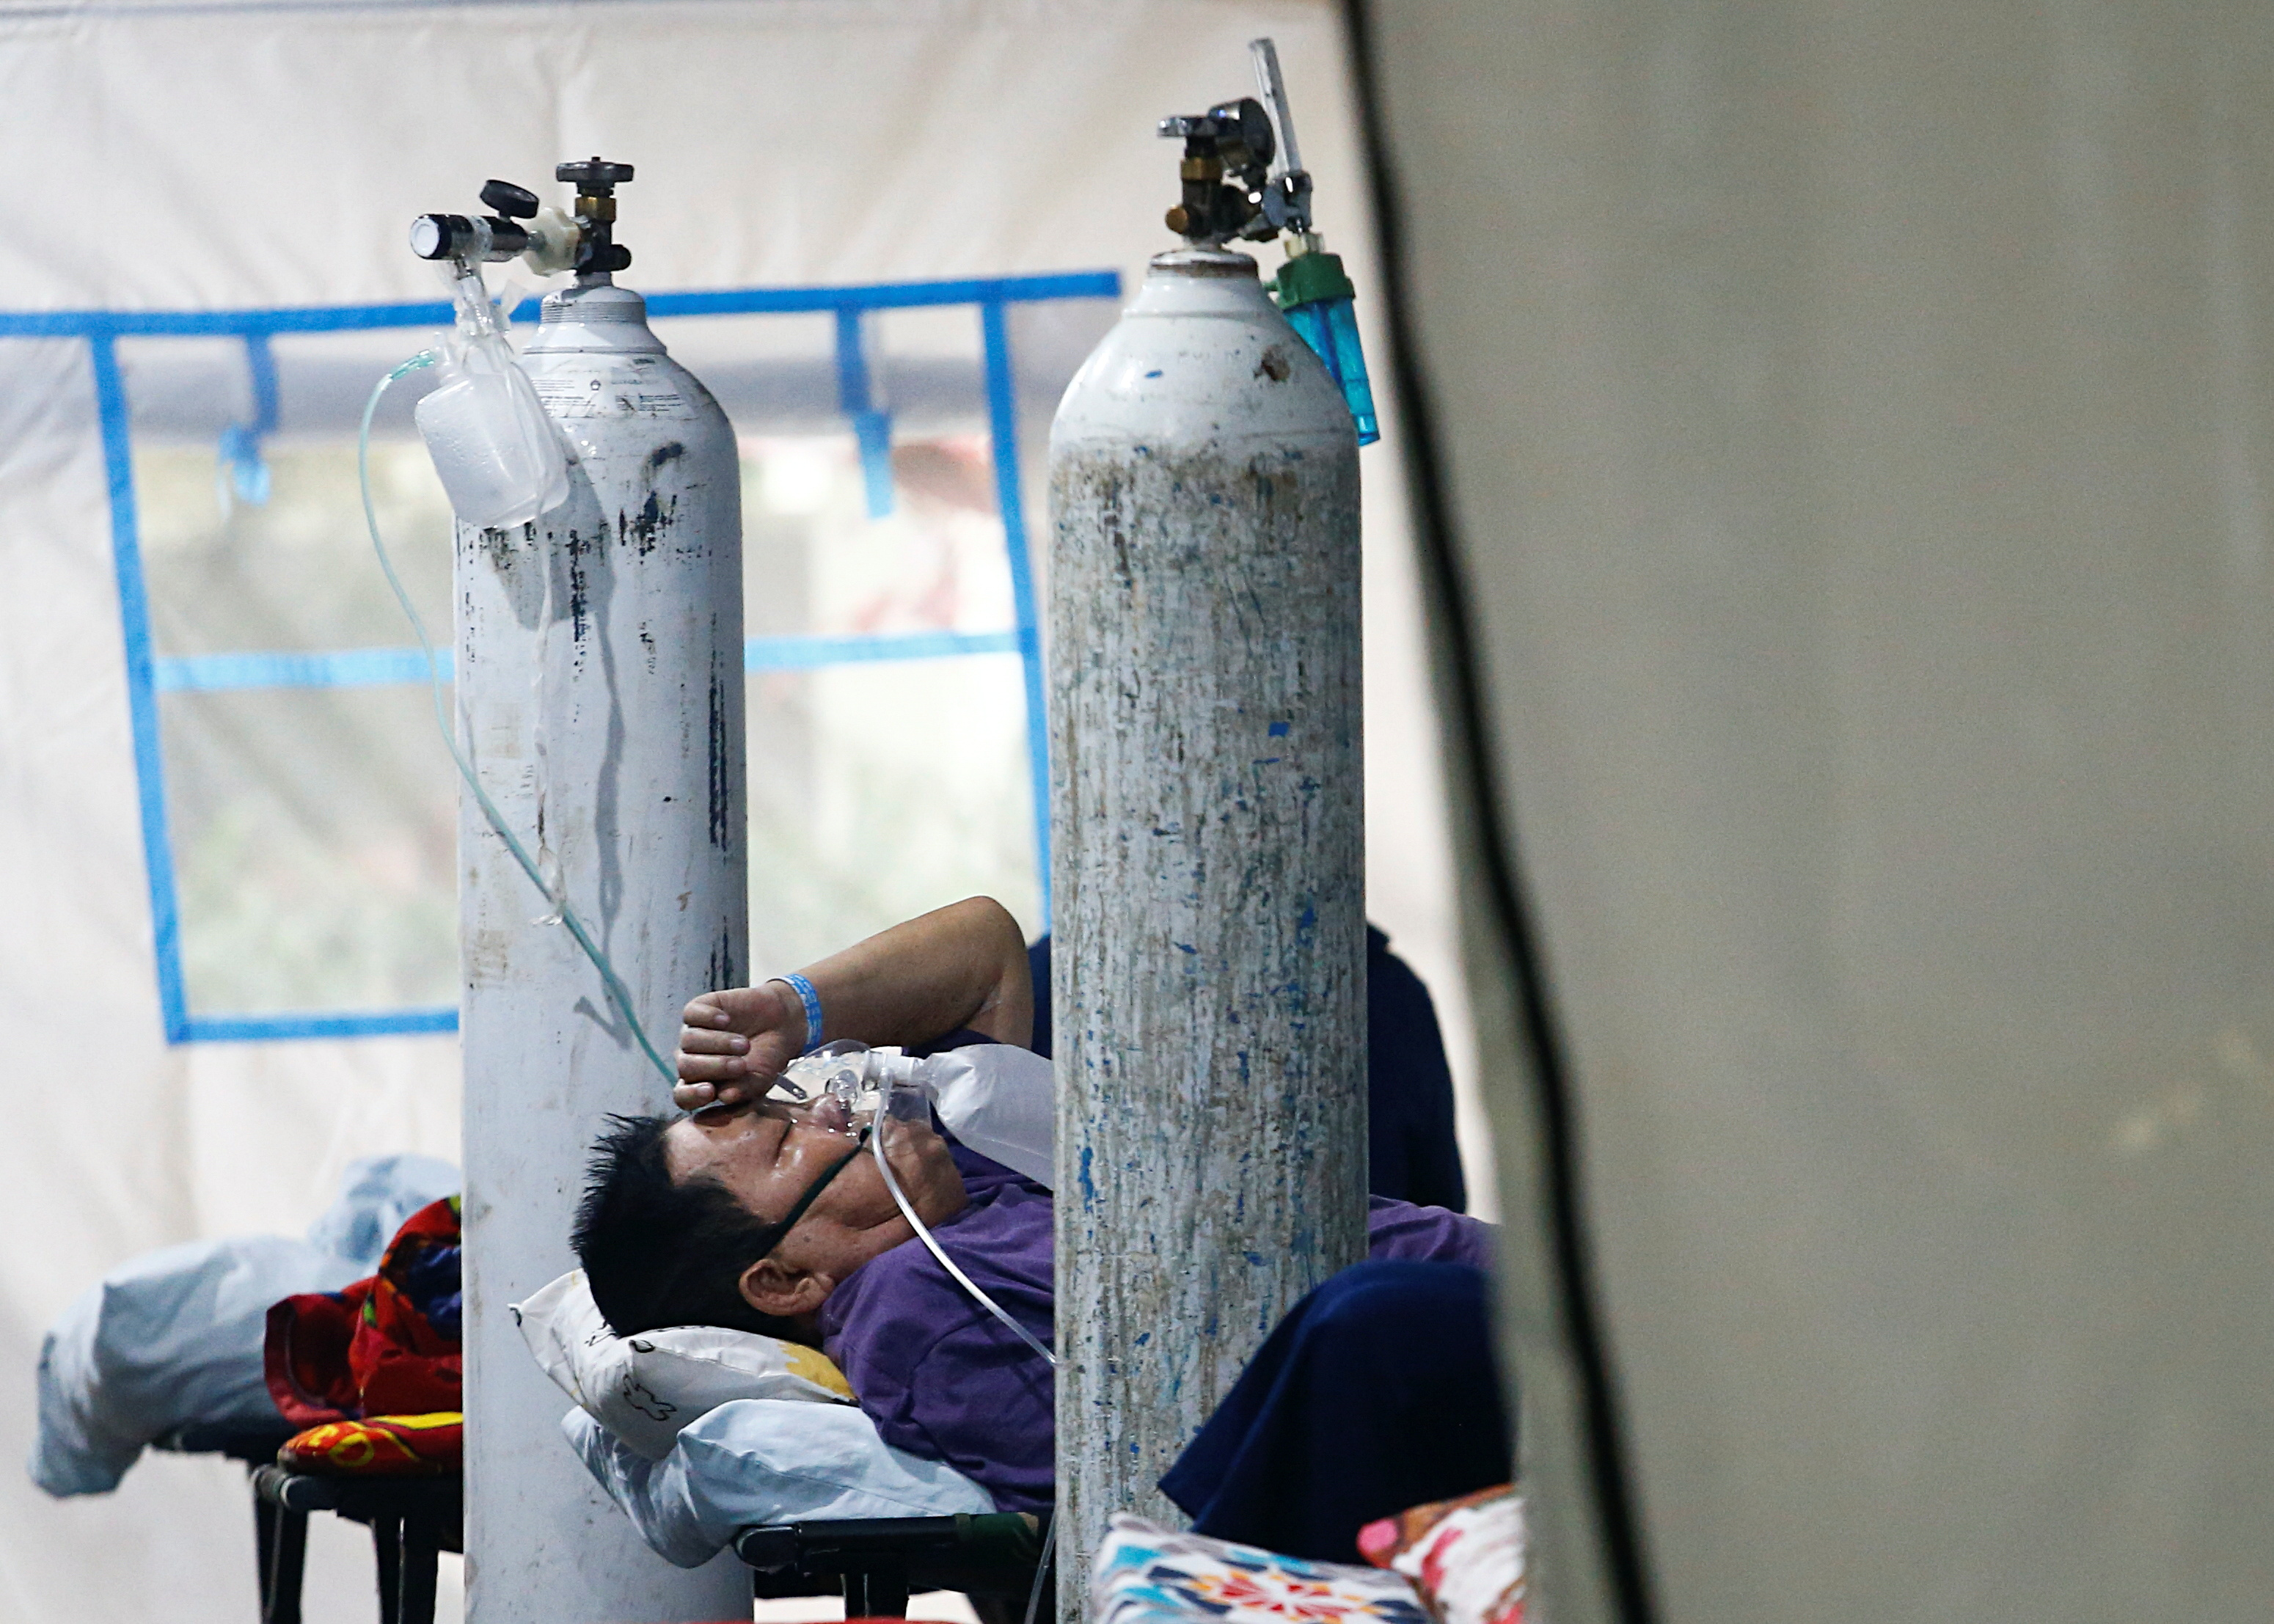 A patient suffering from the coronavirus disease (COVID-19) breaths with a non-rebreather mask in an emergency tent at a hospital in Jakarta, Indonesia, June 24, 2021. REUTERS/Ajeng Dinar Ulfiana